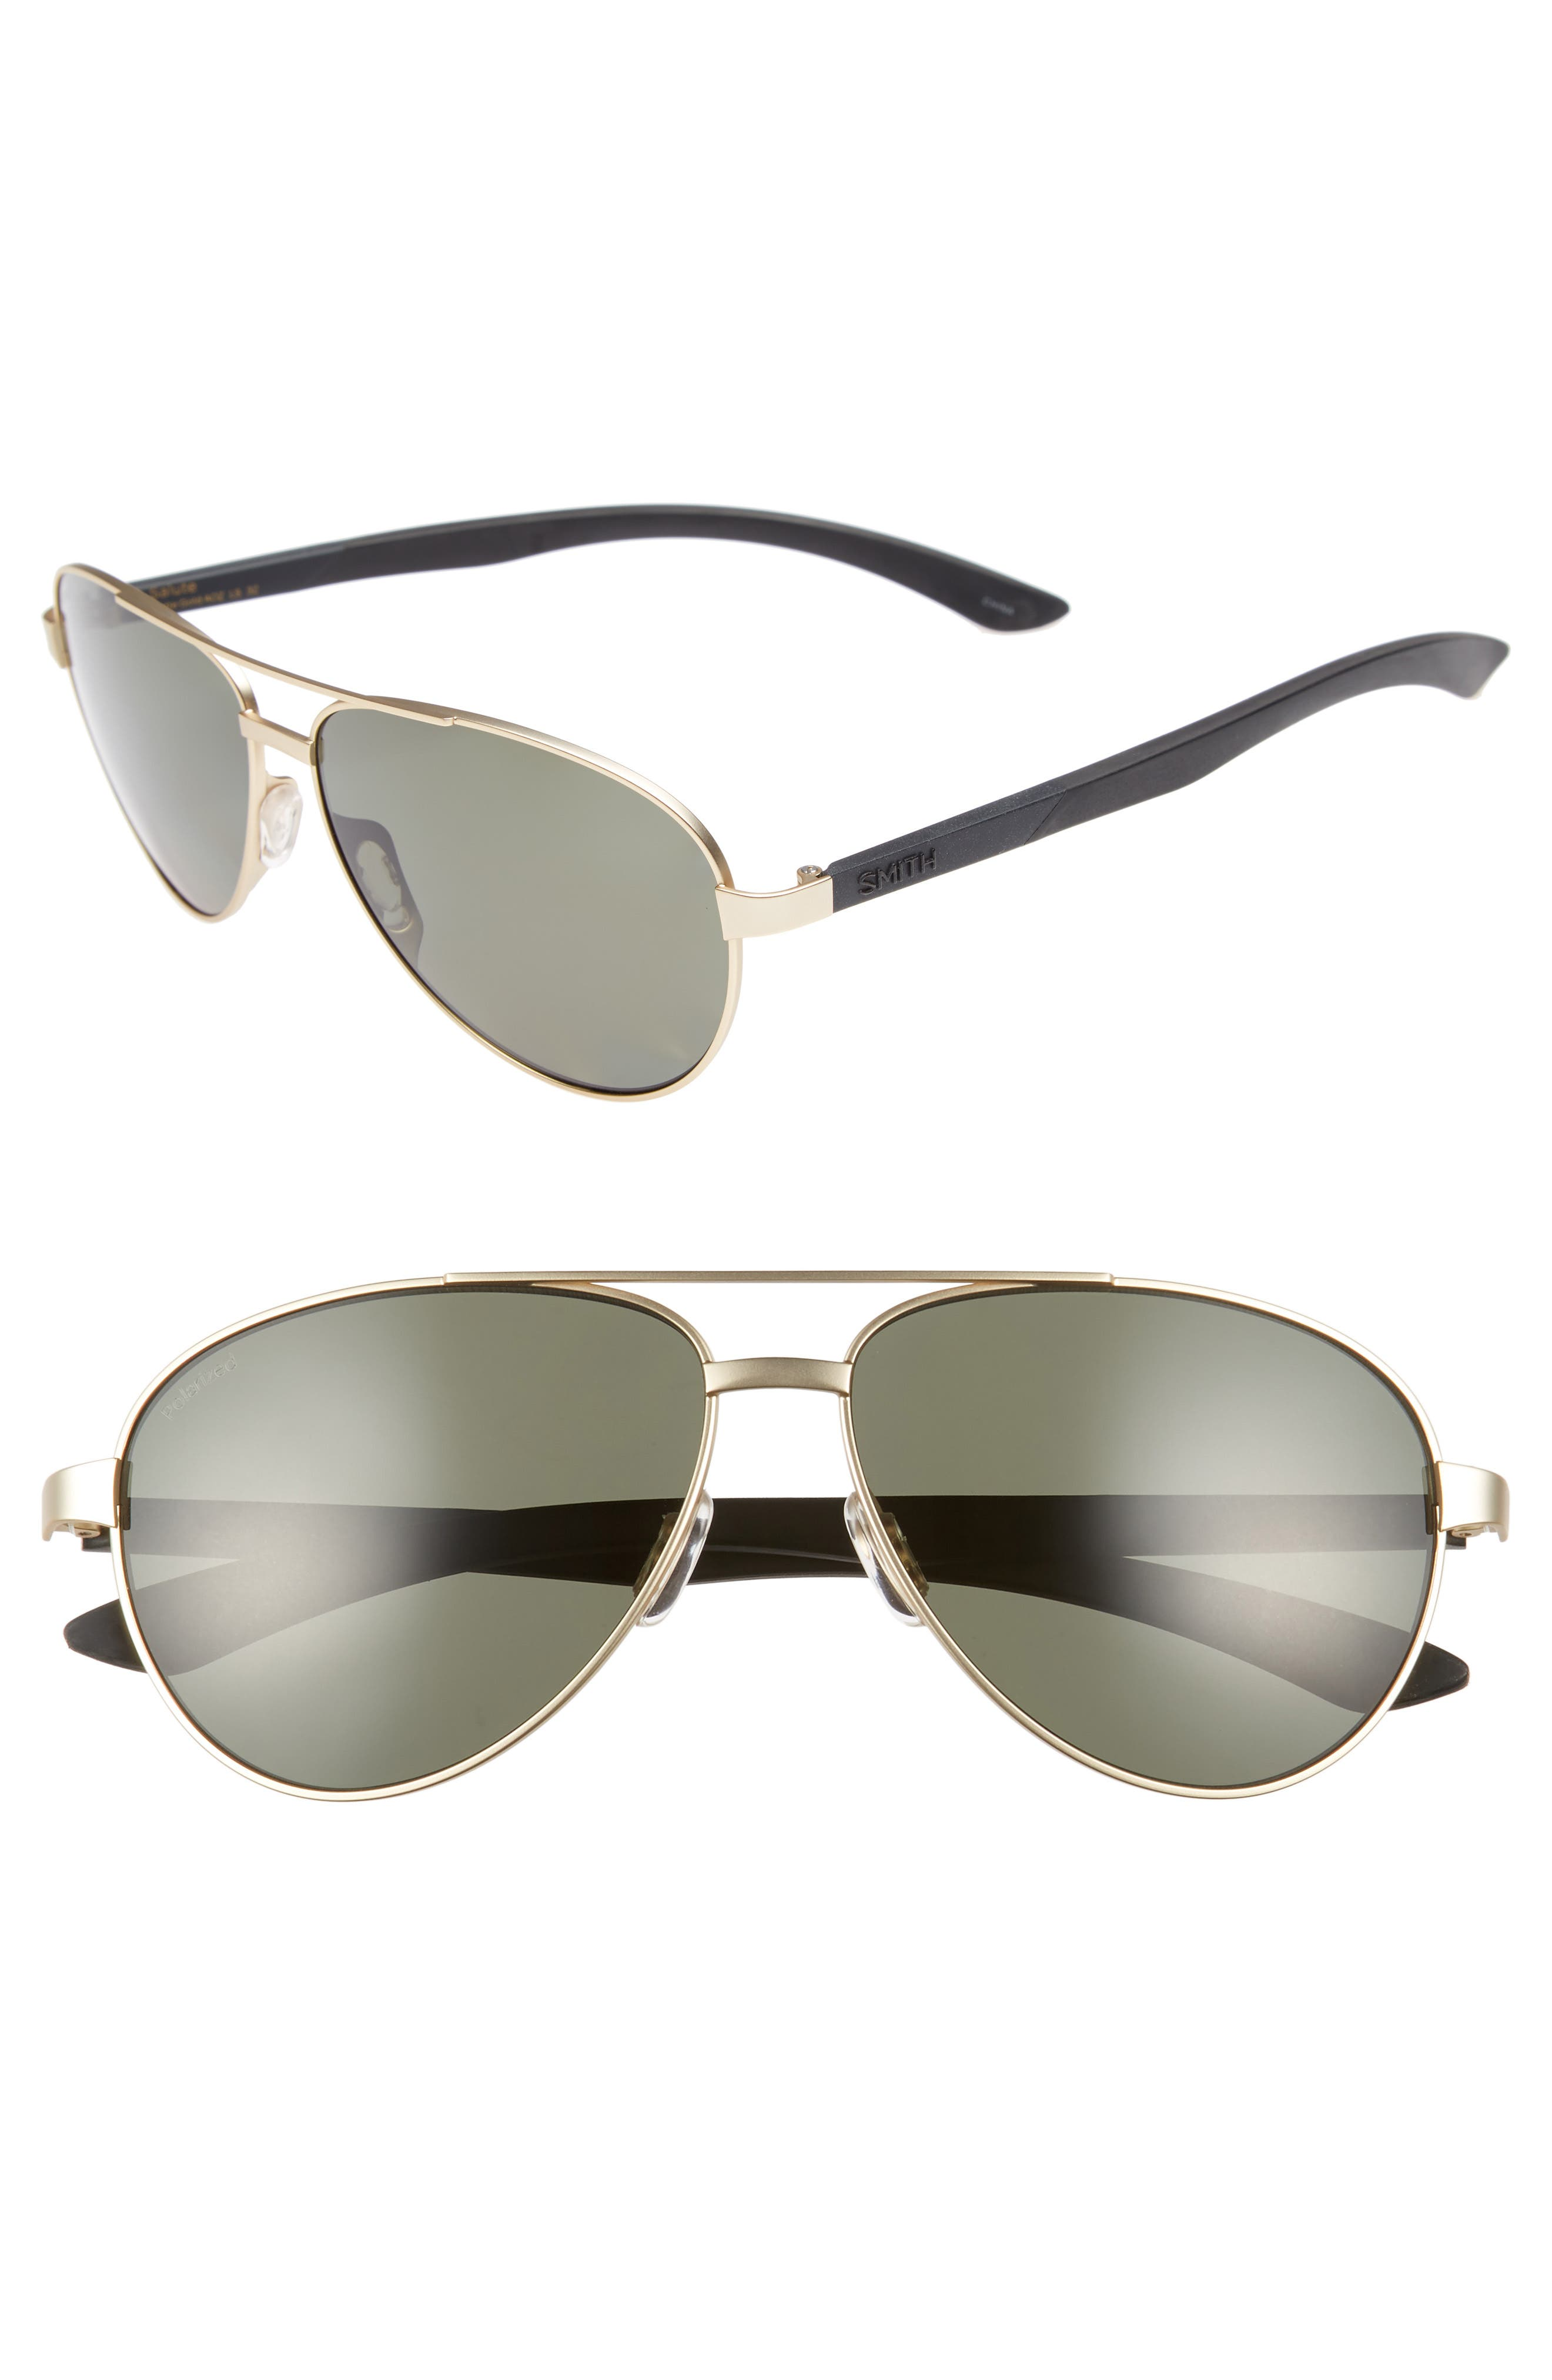 Salute 59mm Polarized Aviator Sunglasses,                             Main thumbnail 1, color,                             Matte Gold